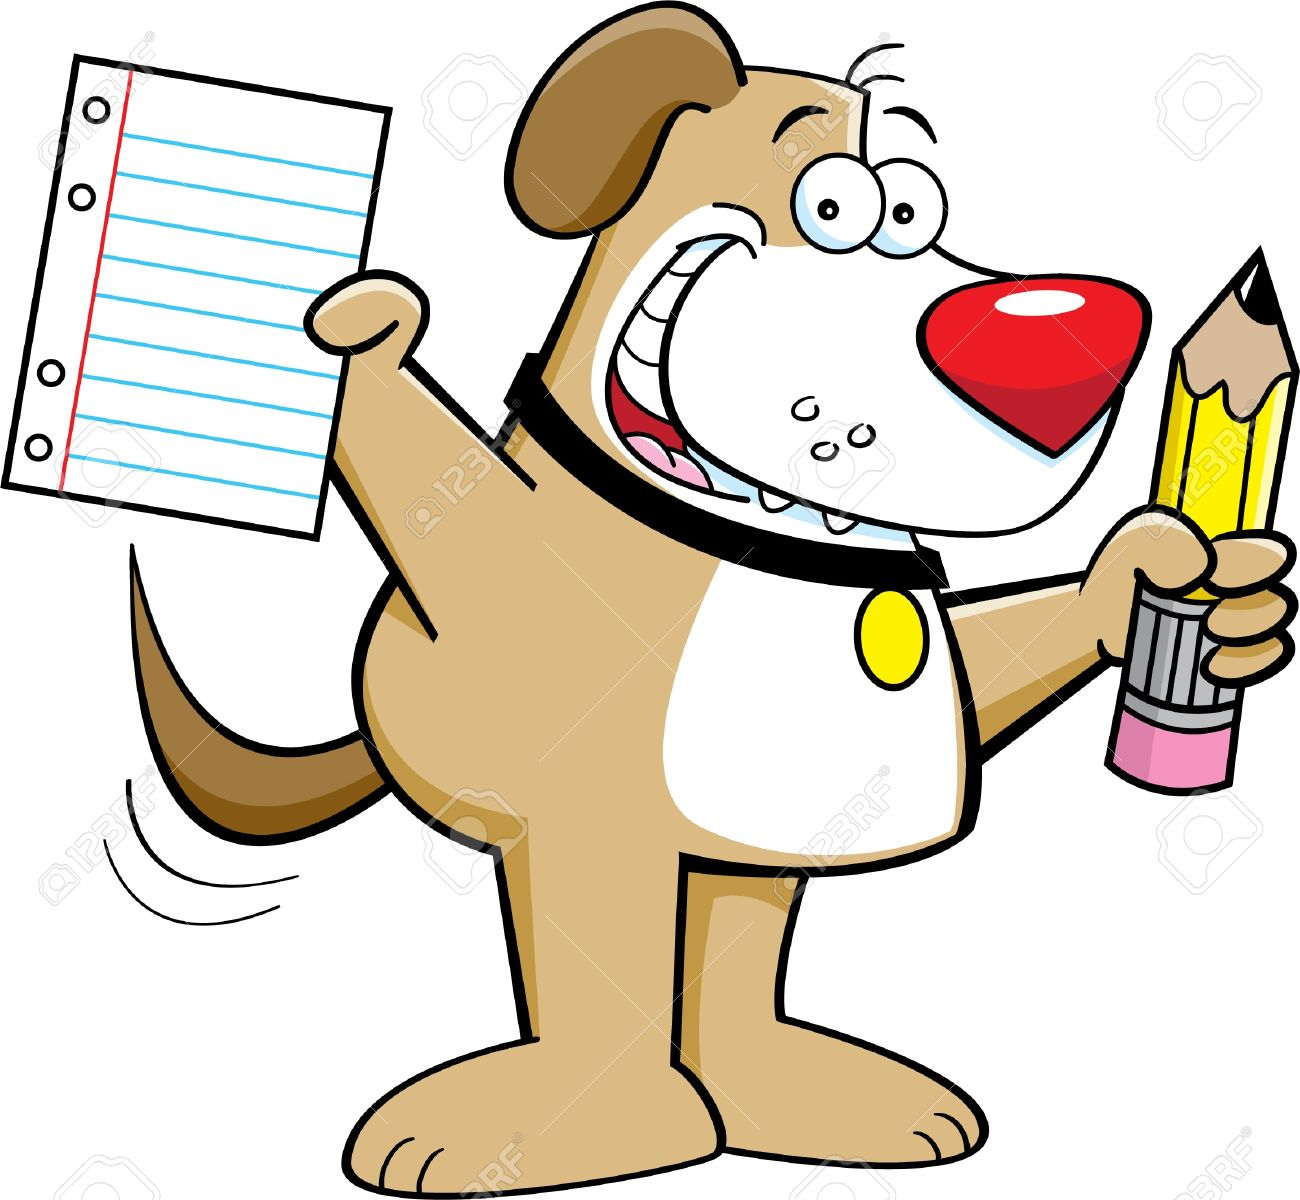 Cartoon Illustration Of A Dog Holding A Pencil And Paper Royalty.